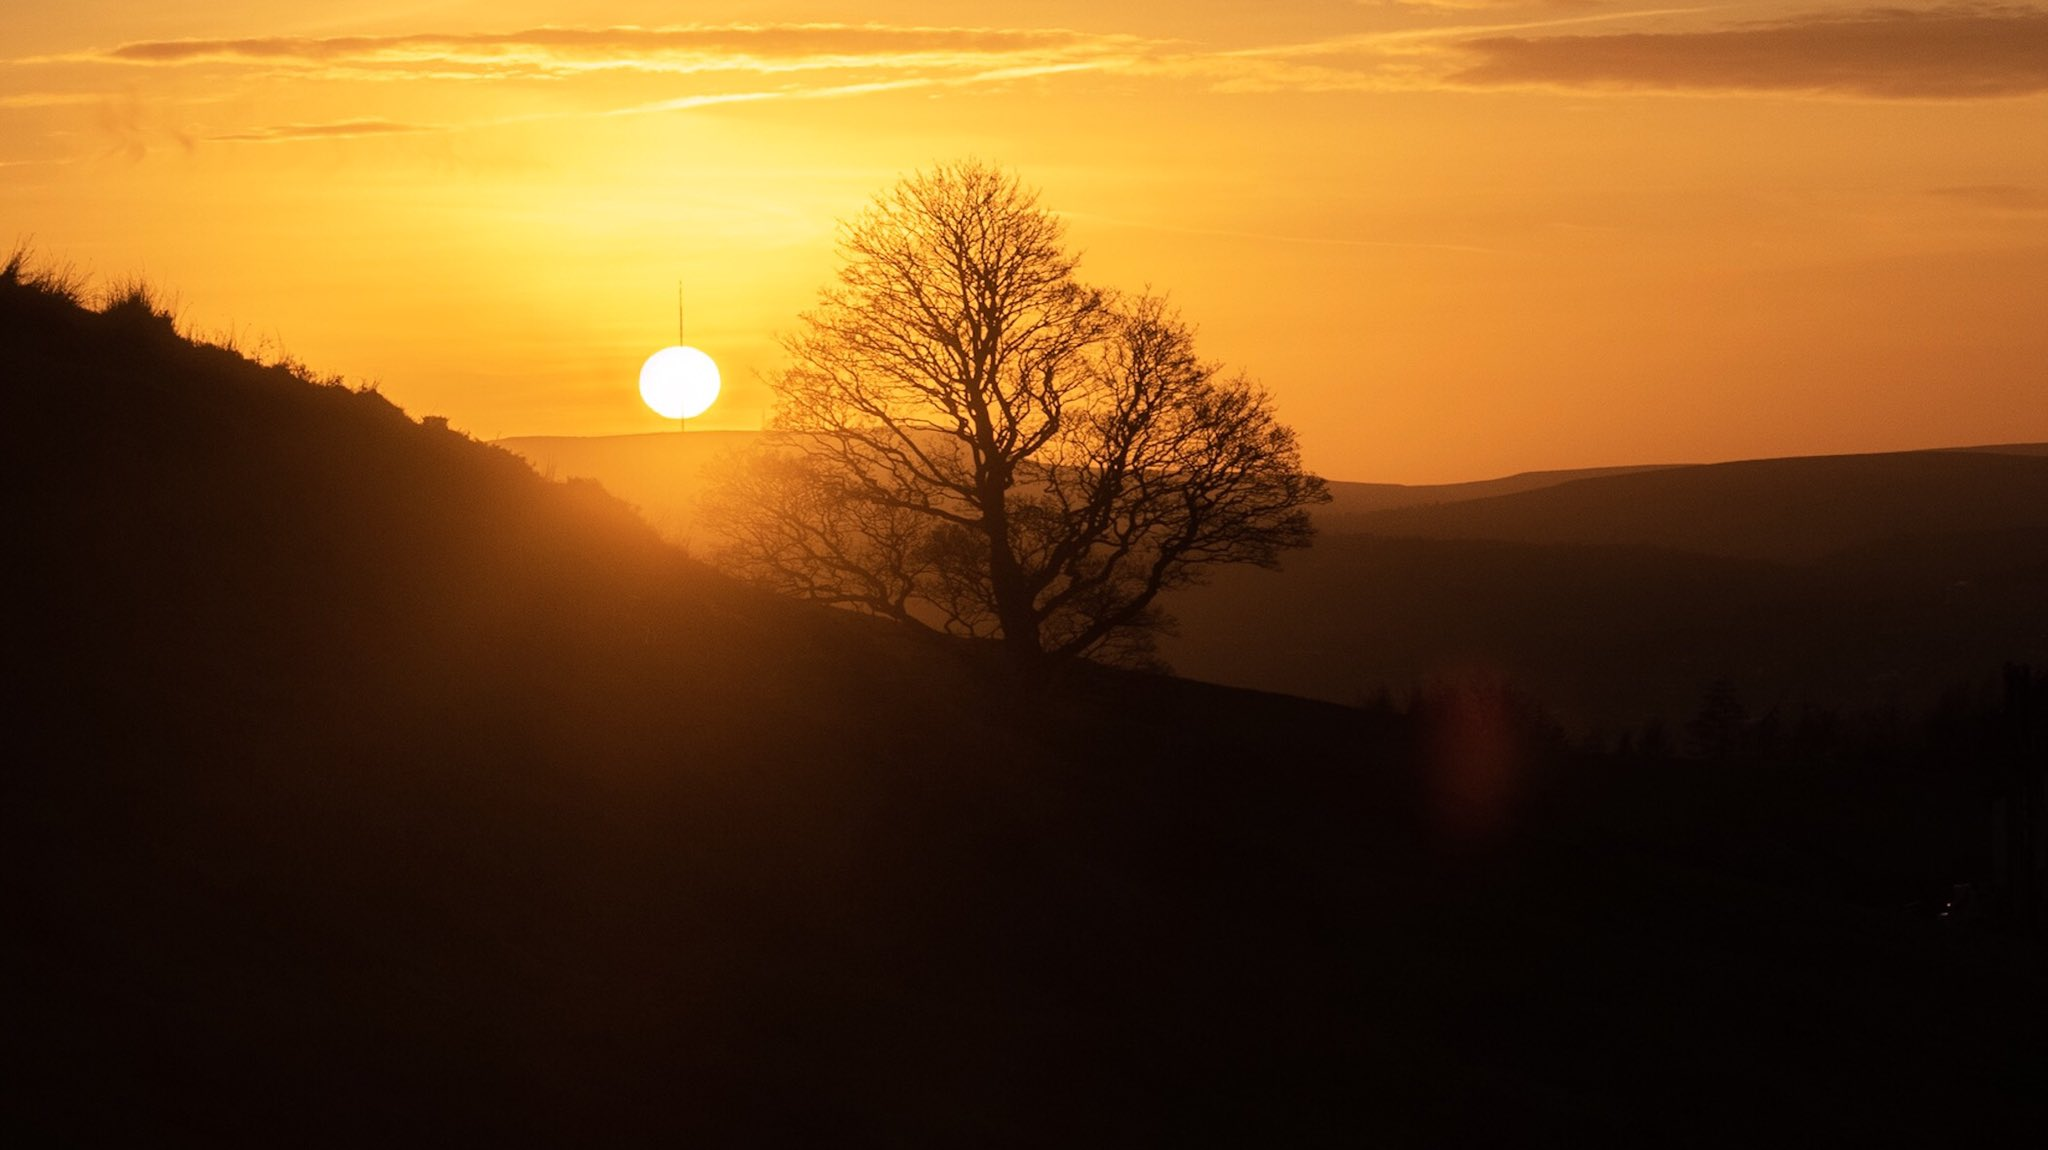 Cocktail stick sunset. Pierced by the Winter Hill mast #photoserotonin https://t.co/AnZCoXKPLh